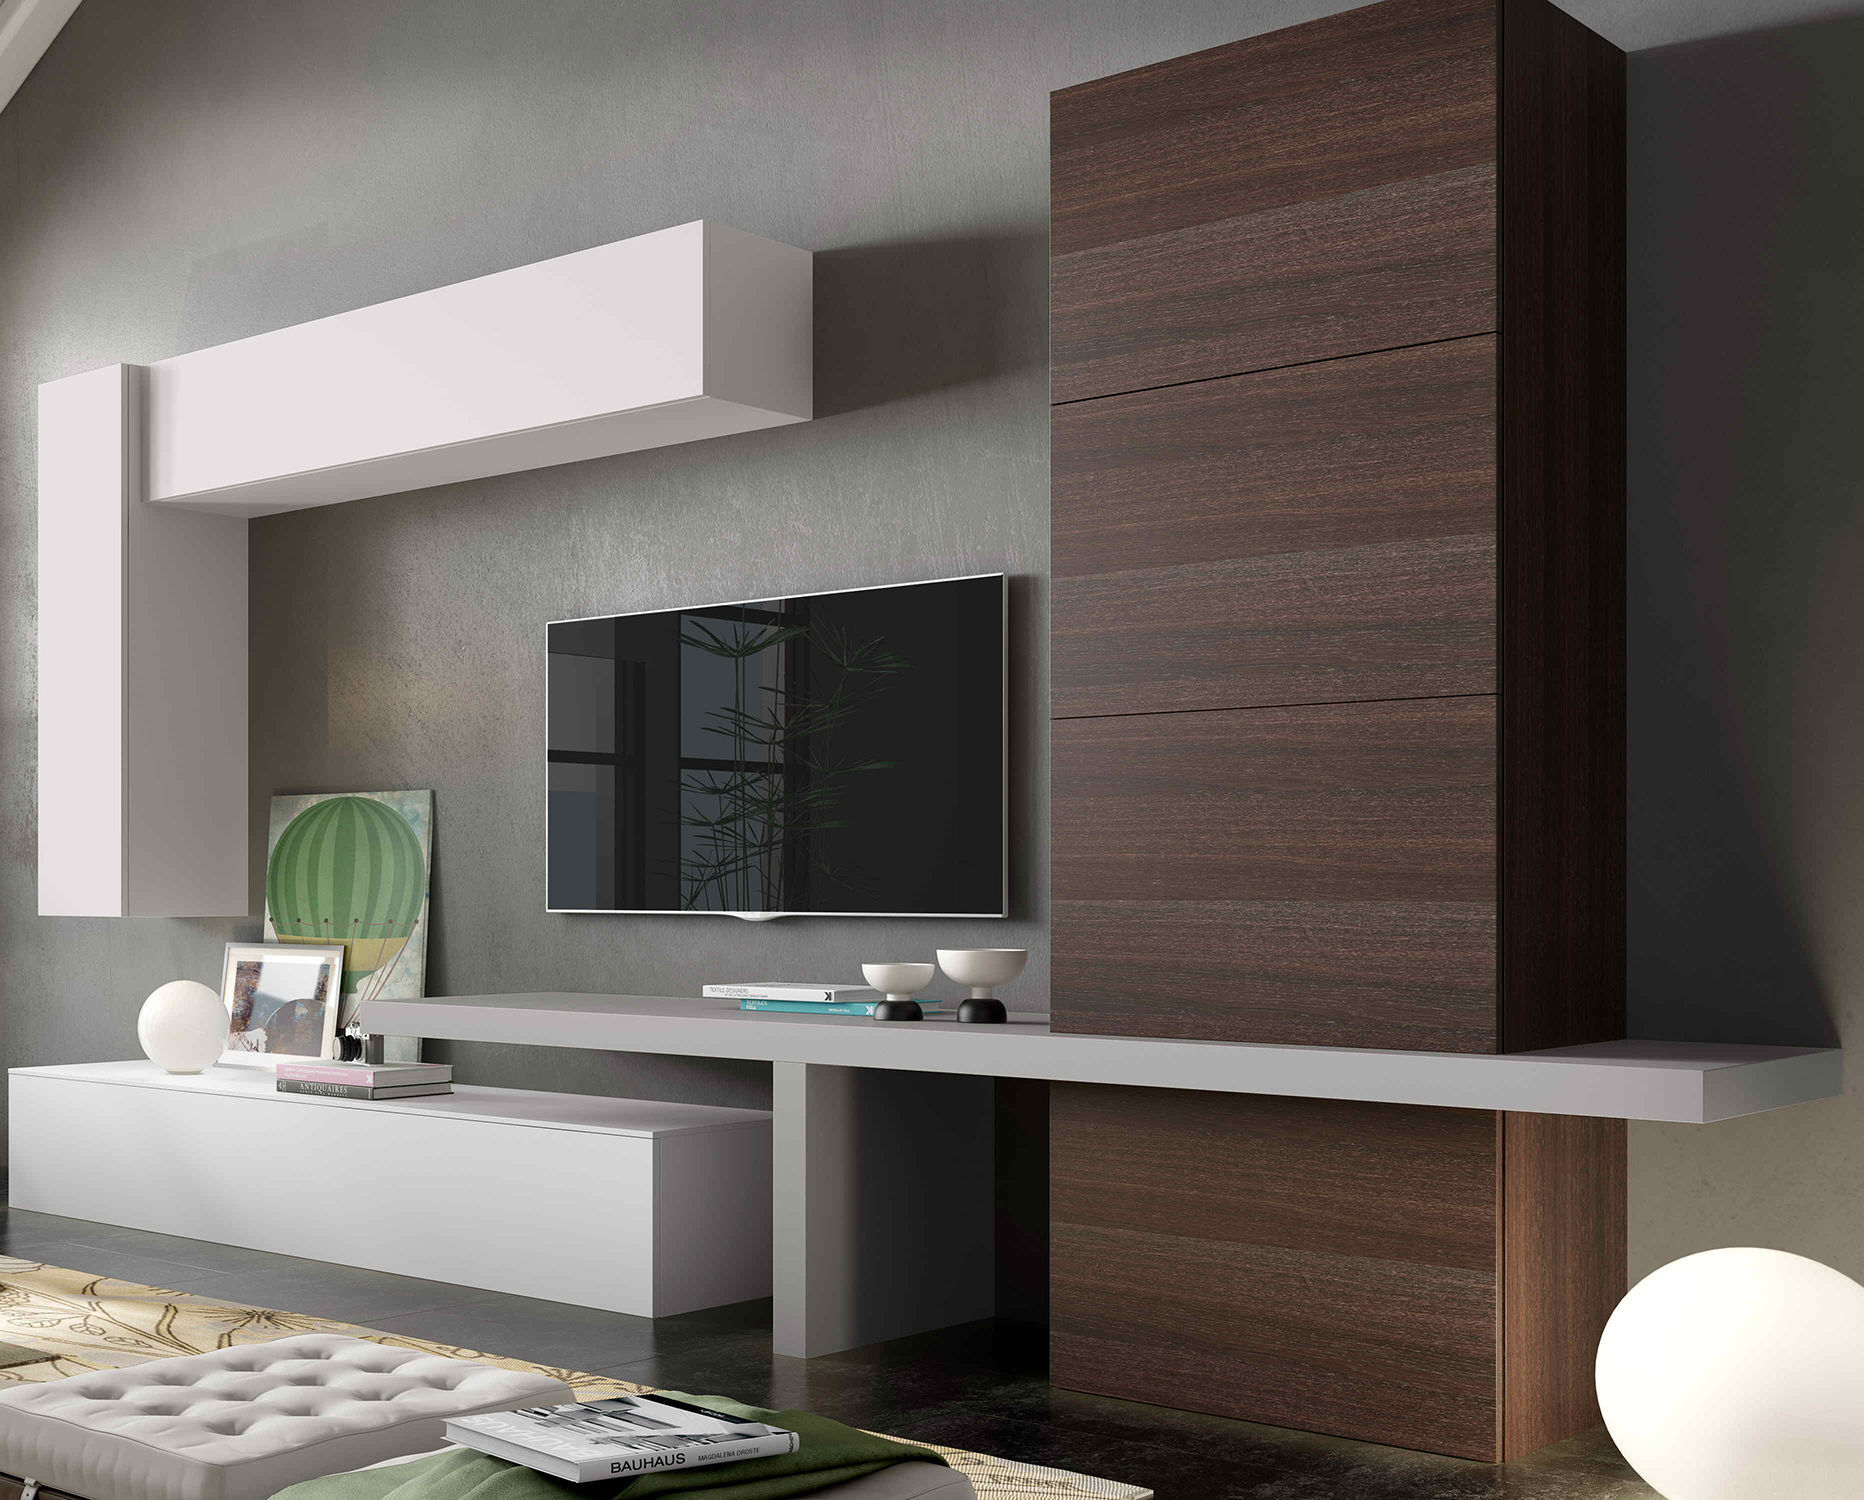 Contemporary Tv Wall Unit Lacquered Wood Impersonal2k15 2  # Muebles Piferrer Iline